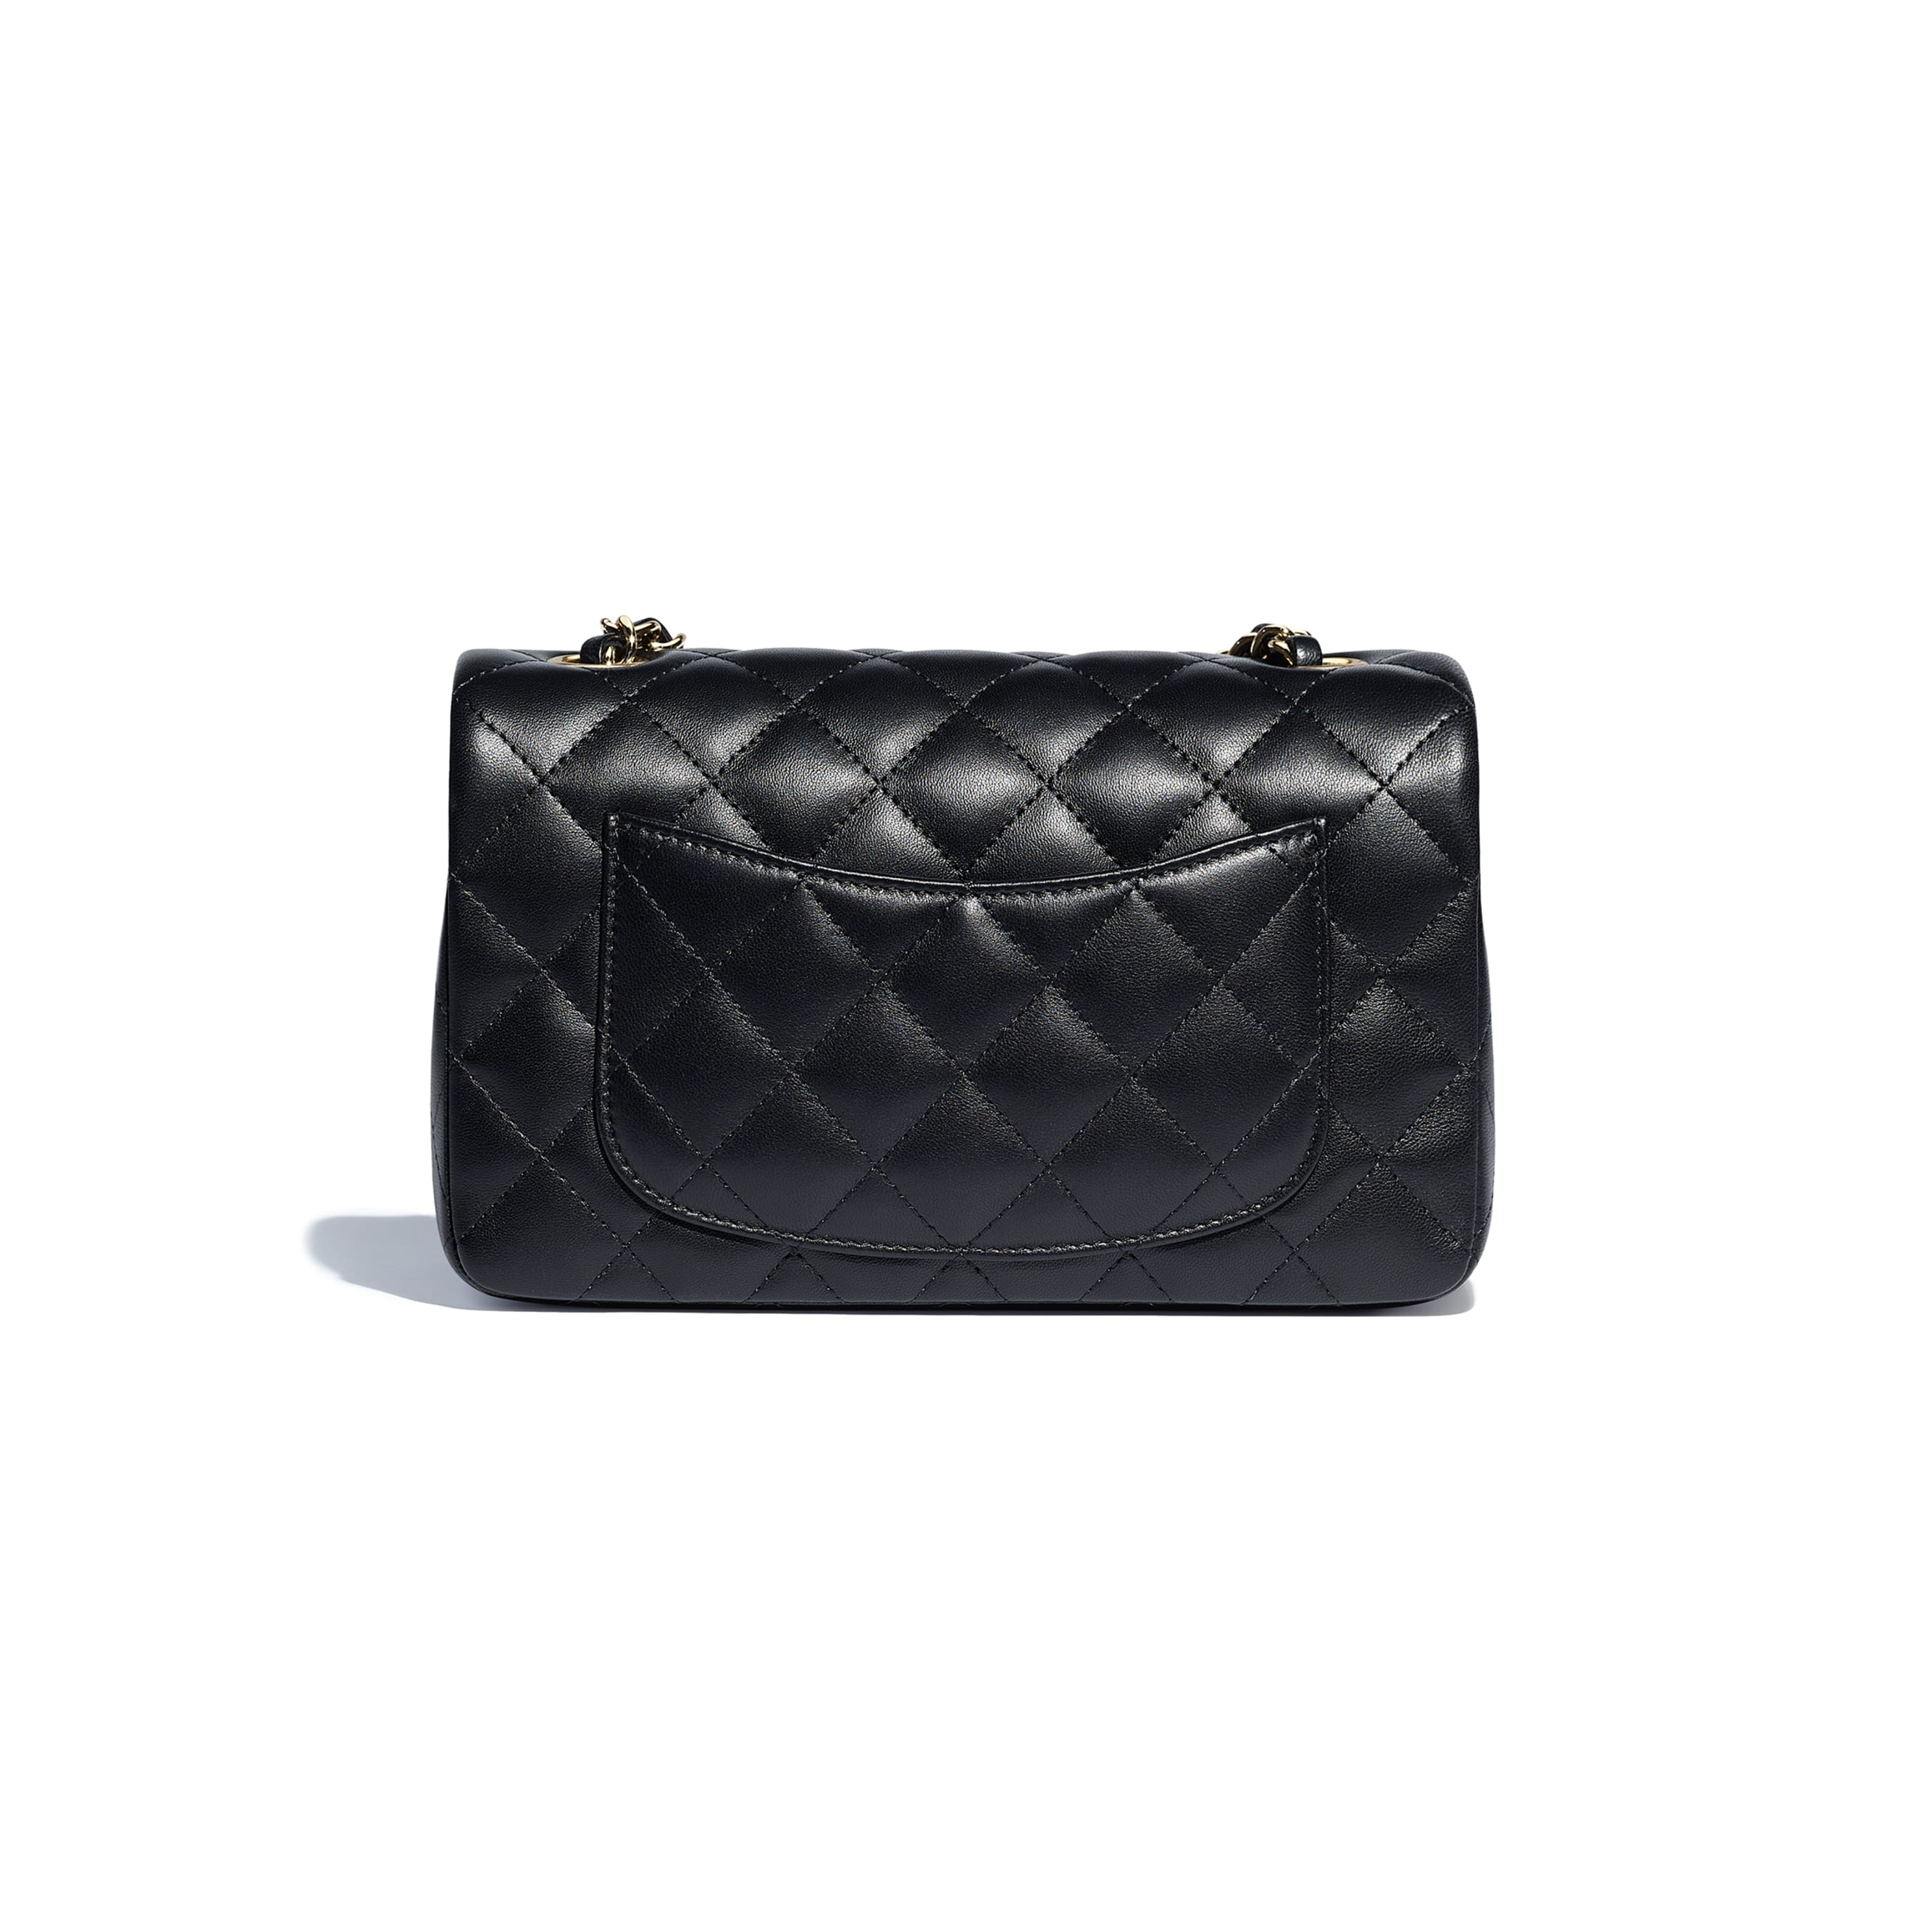 Mini Flap Bag - Black - Lambskin - CHANEL - Alternative view - see standard sized version